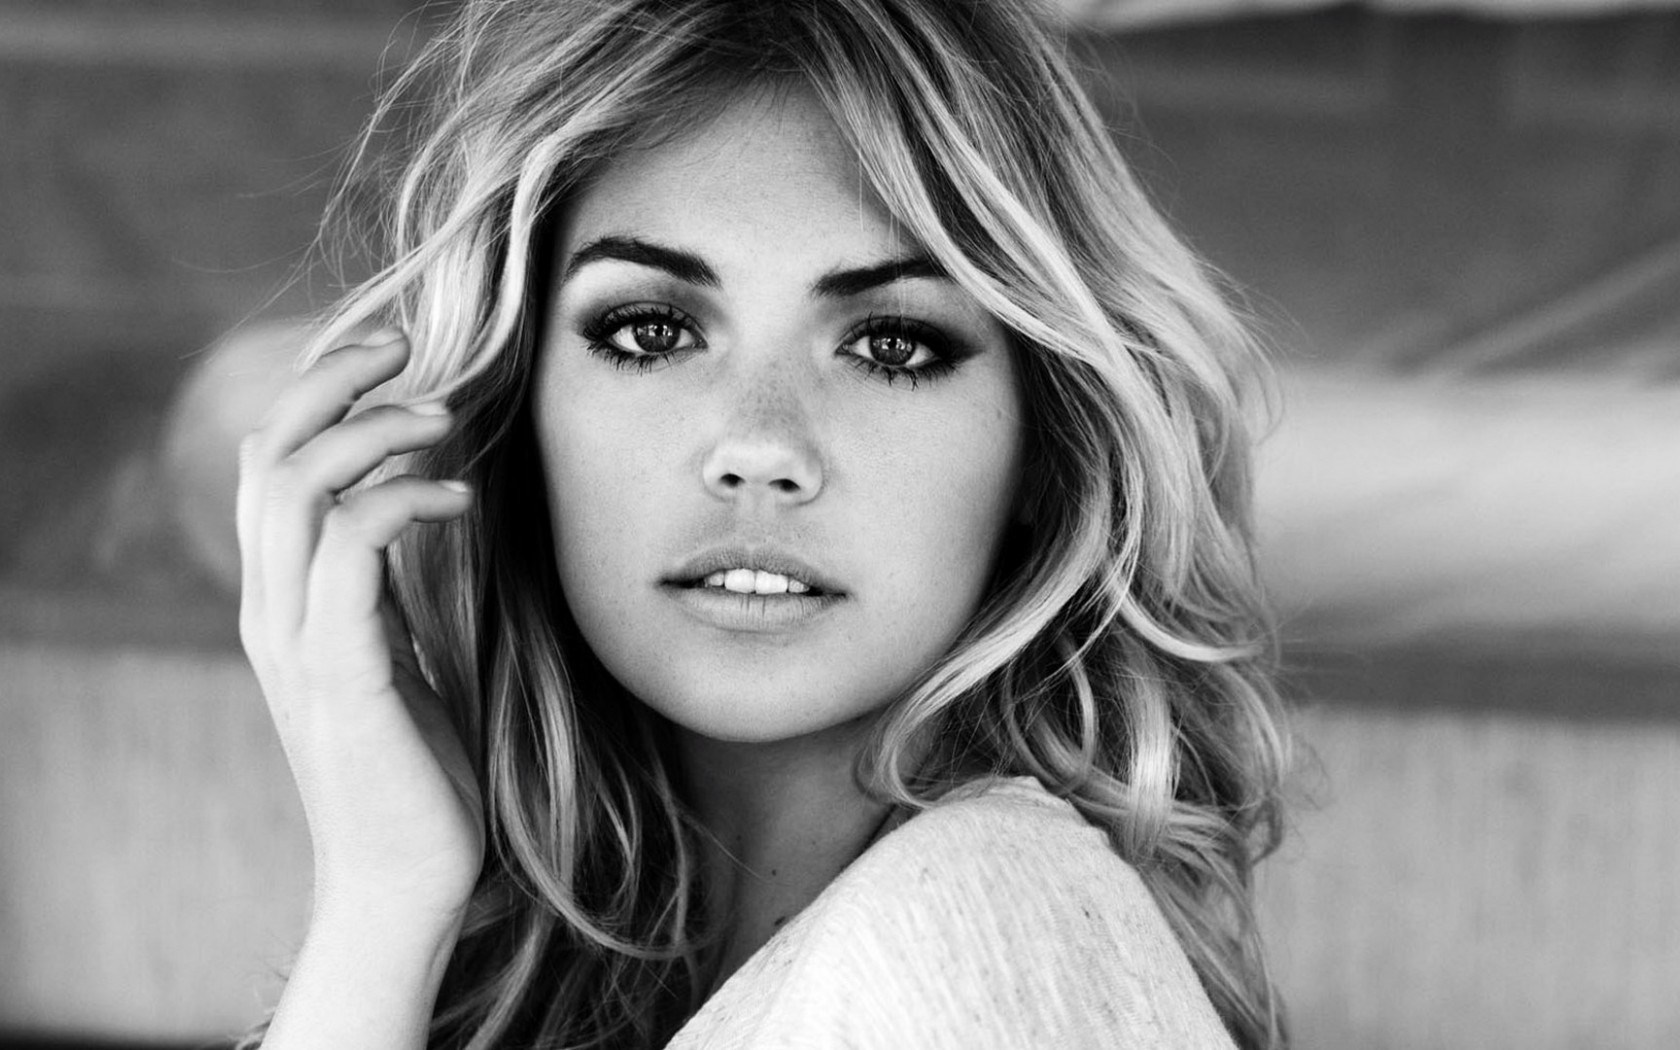 Kate Upton Model Actress Girl